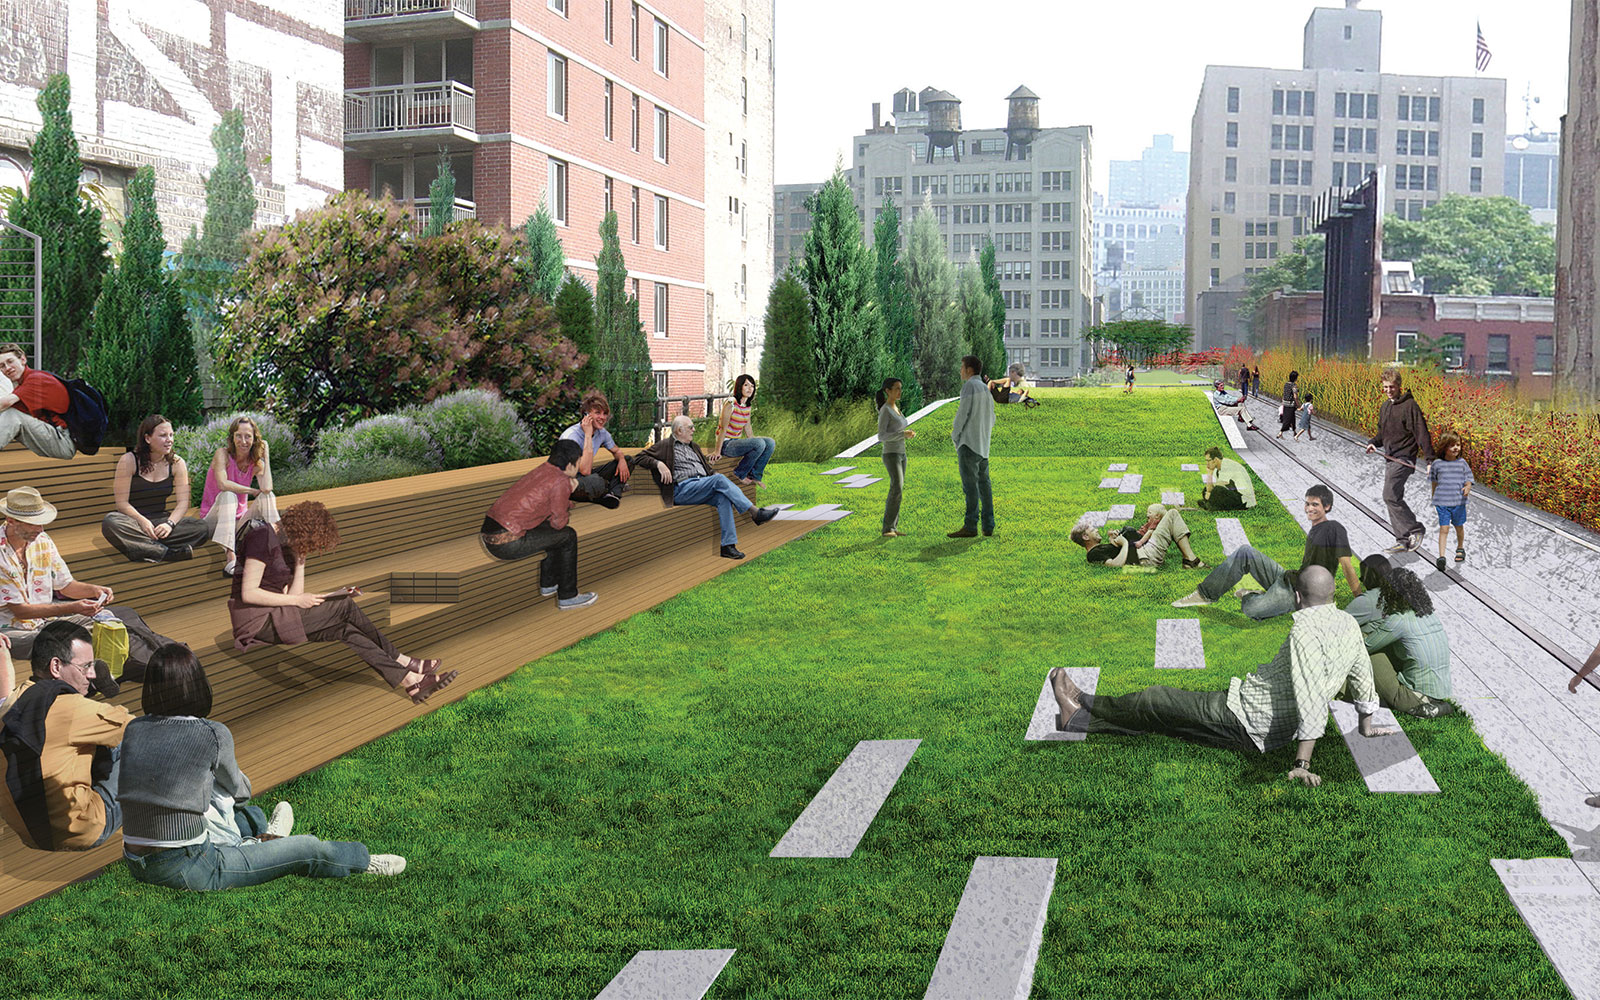 Best Parks in NYC: The High Line